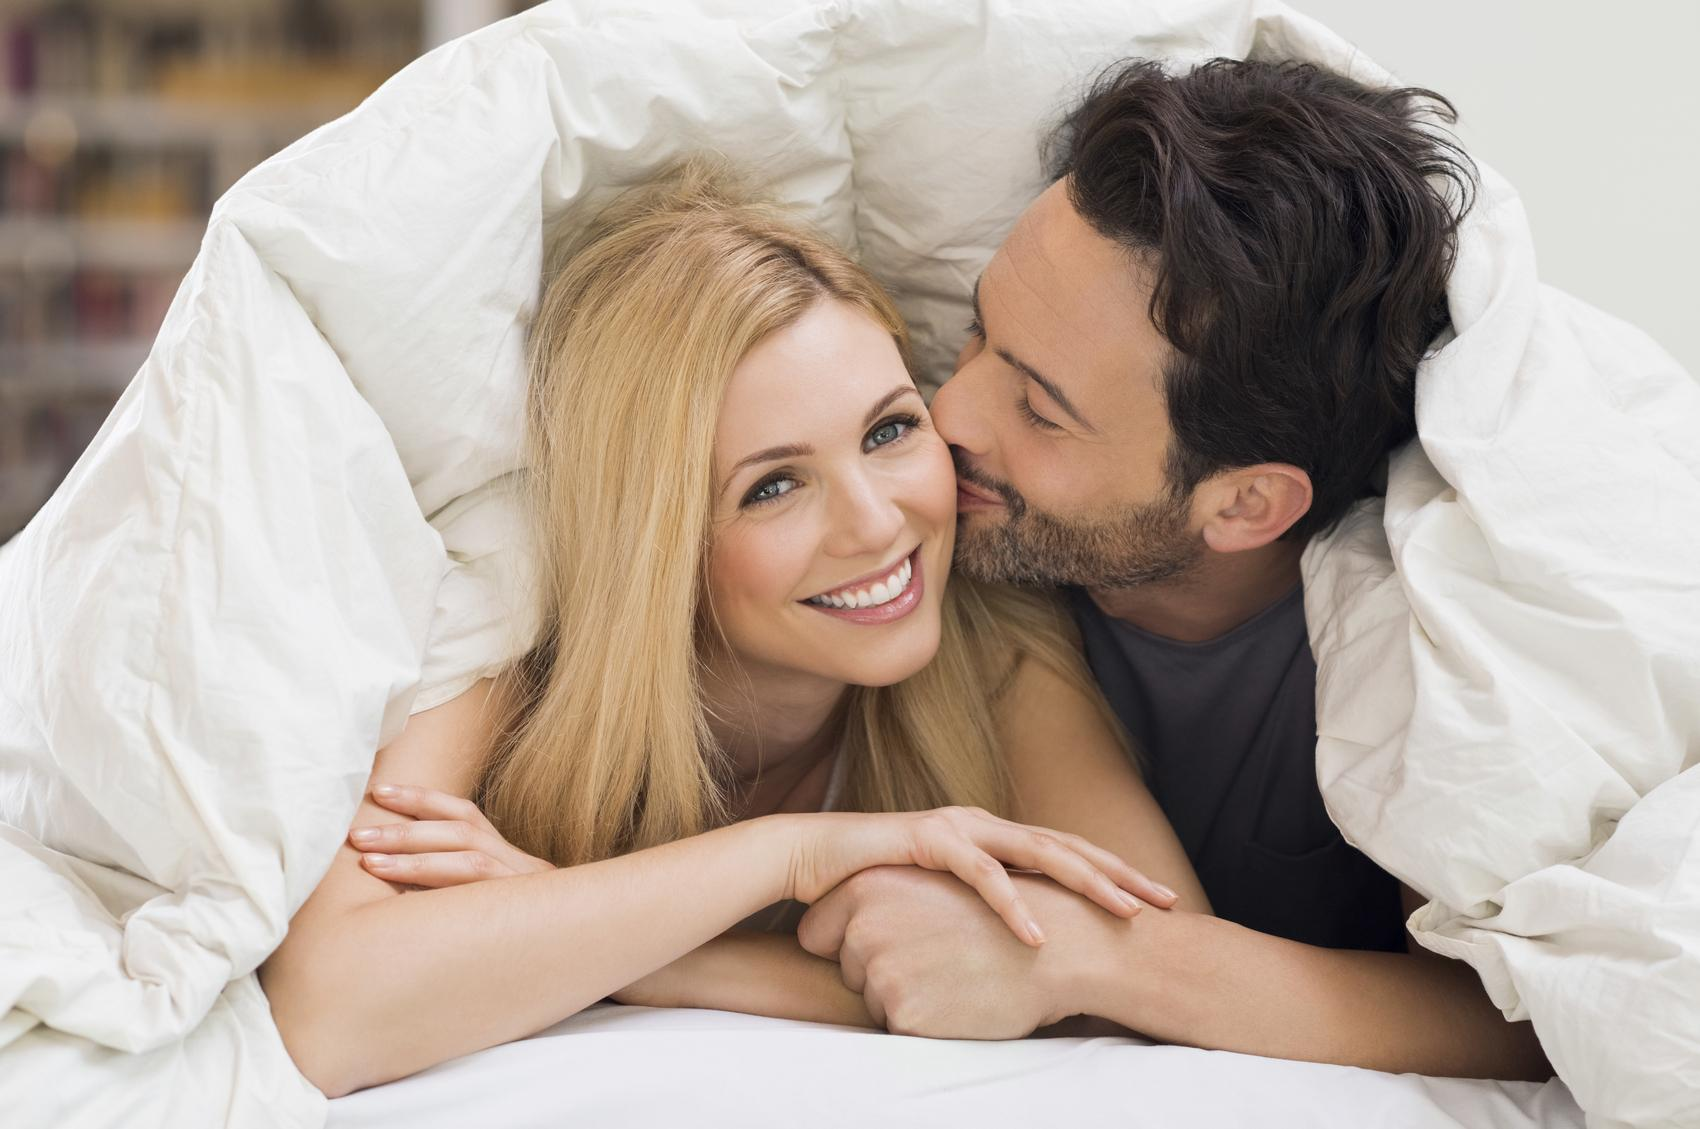 4 Best Male Enhancement Pills In 2020 For Amazing Results